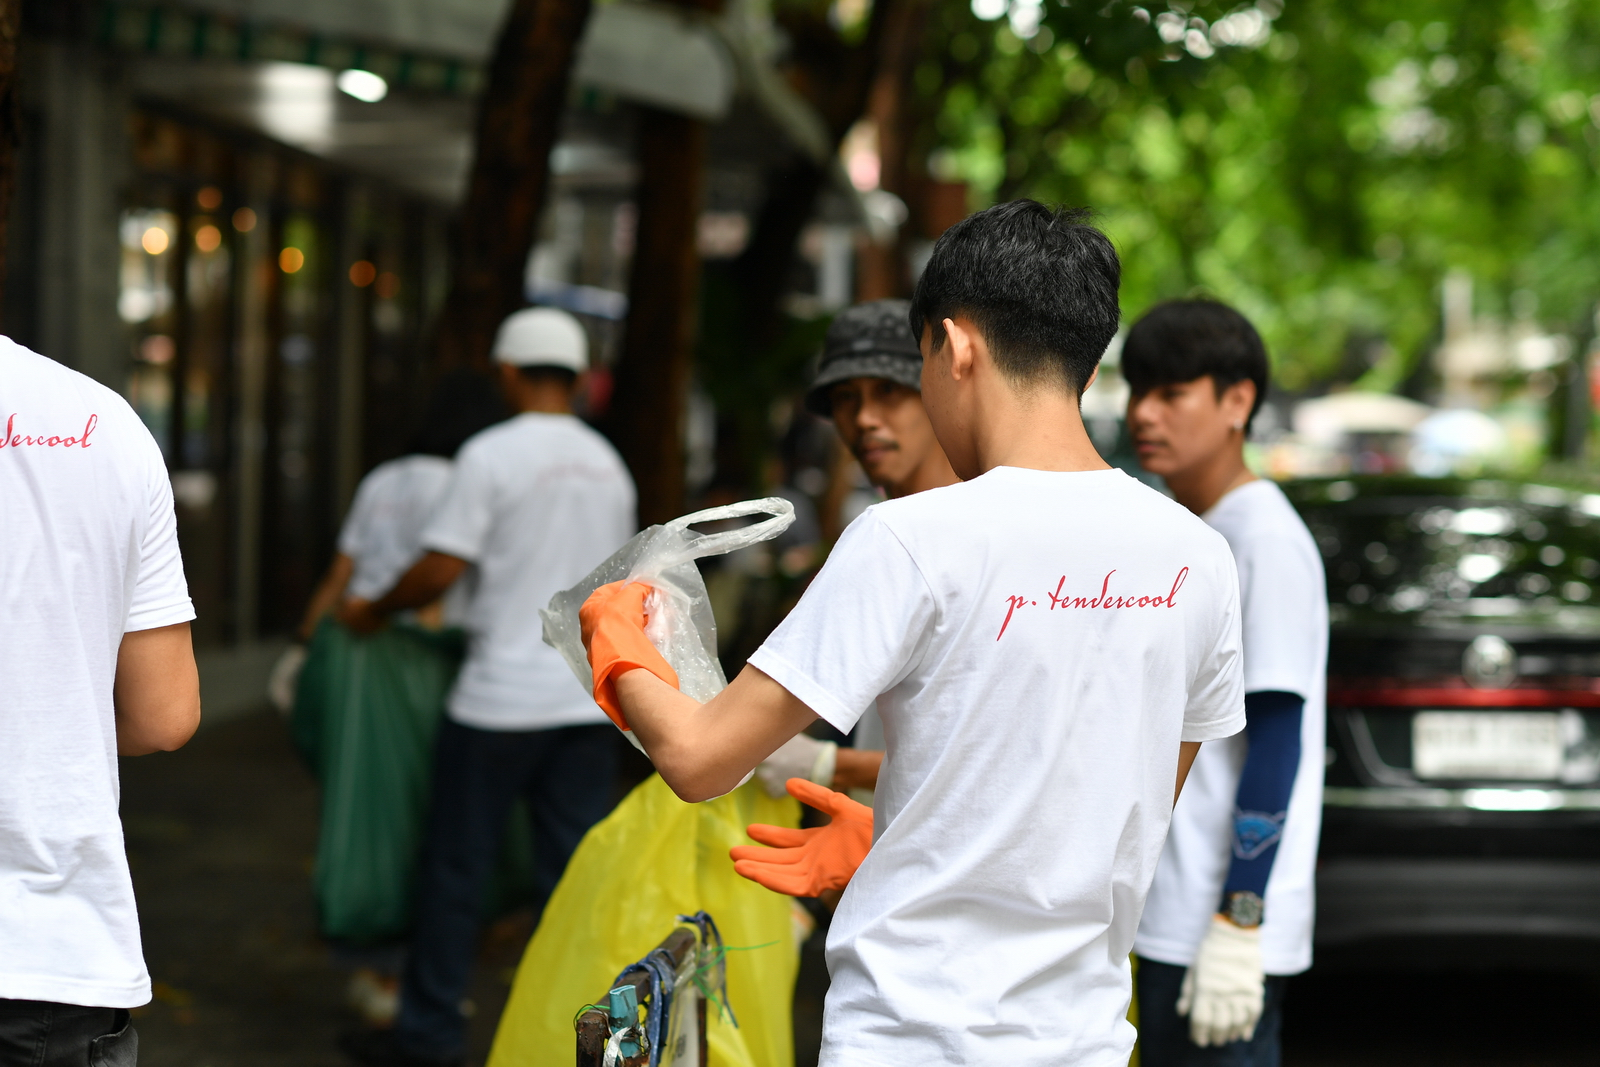 PTendercool-Event-Clean Up The World-190921-085